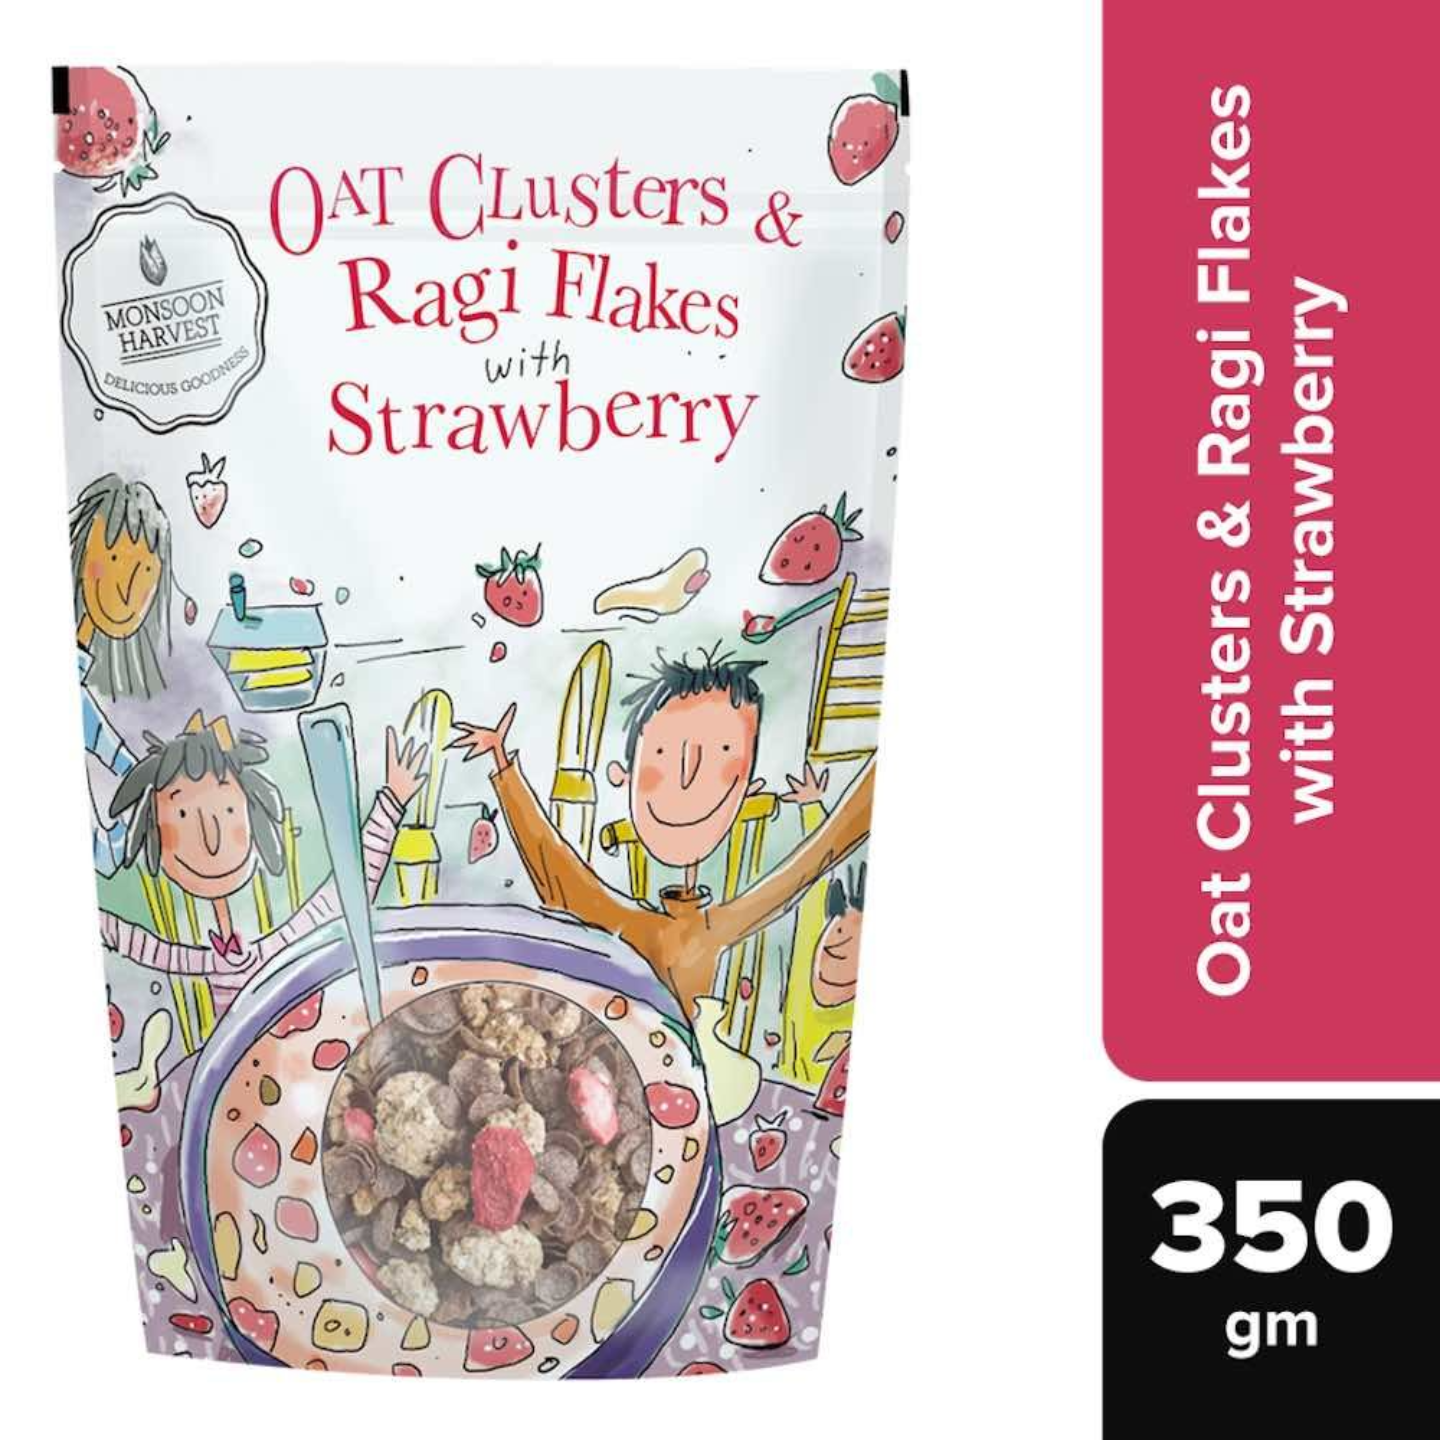 Oat Clusters & Ragi Flakes with Strawberry